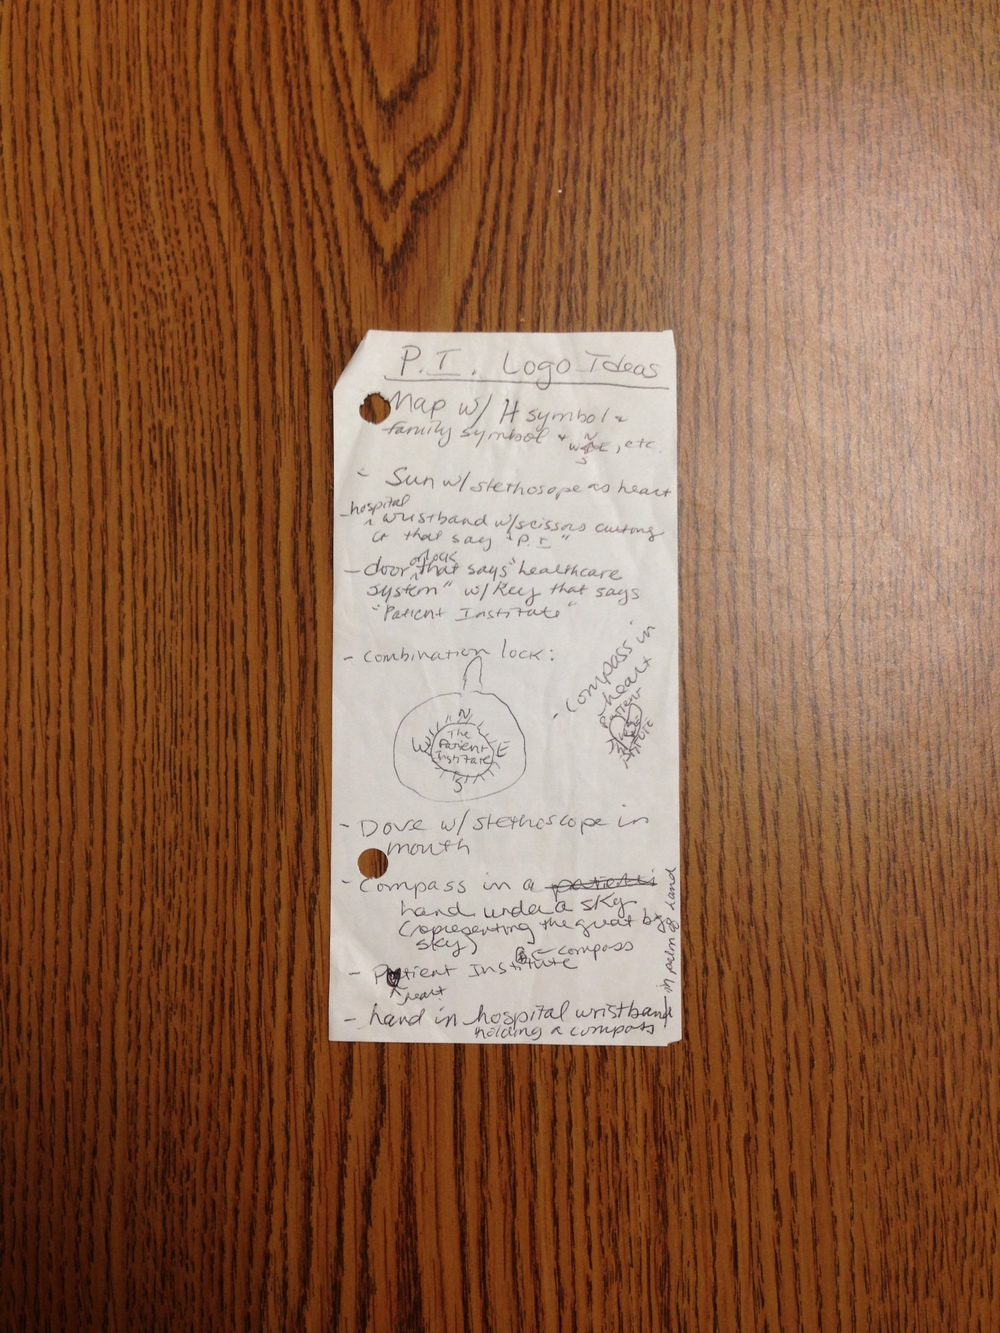 We found our original logo notes on the back of a receipt!